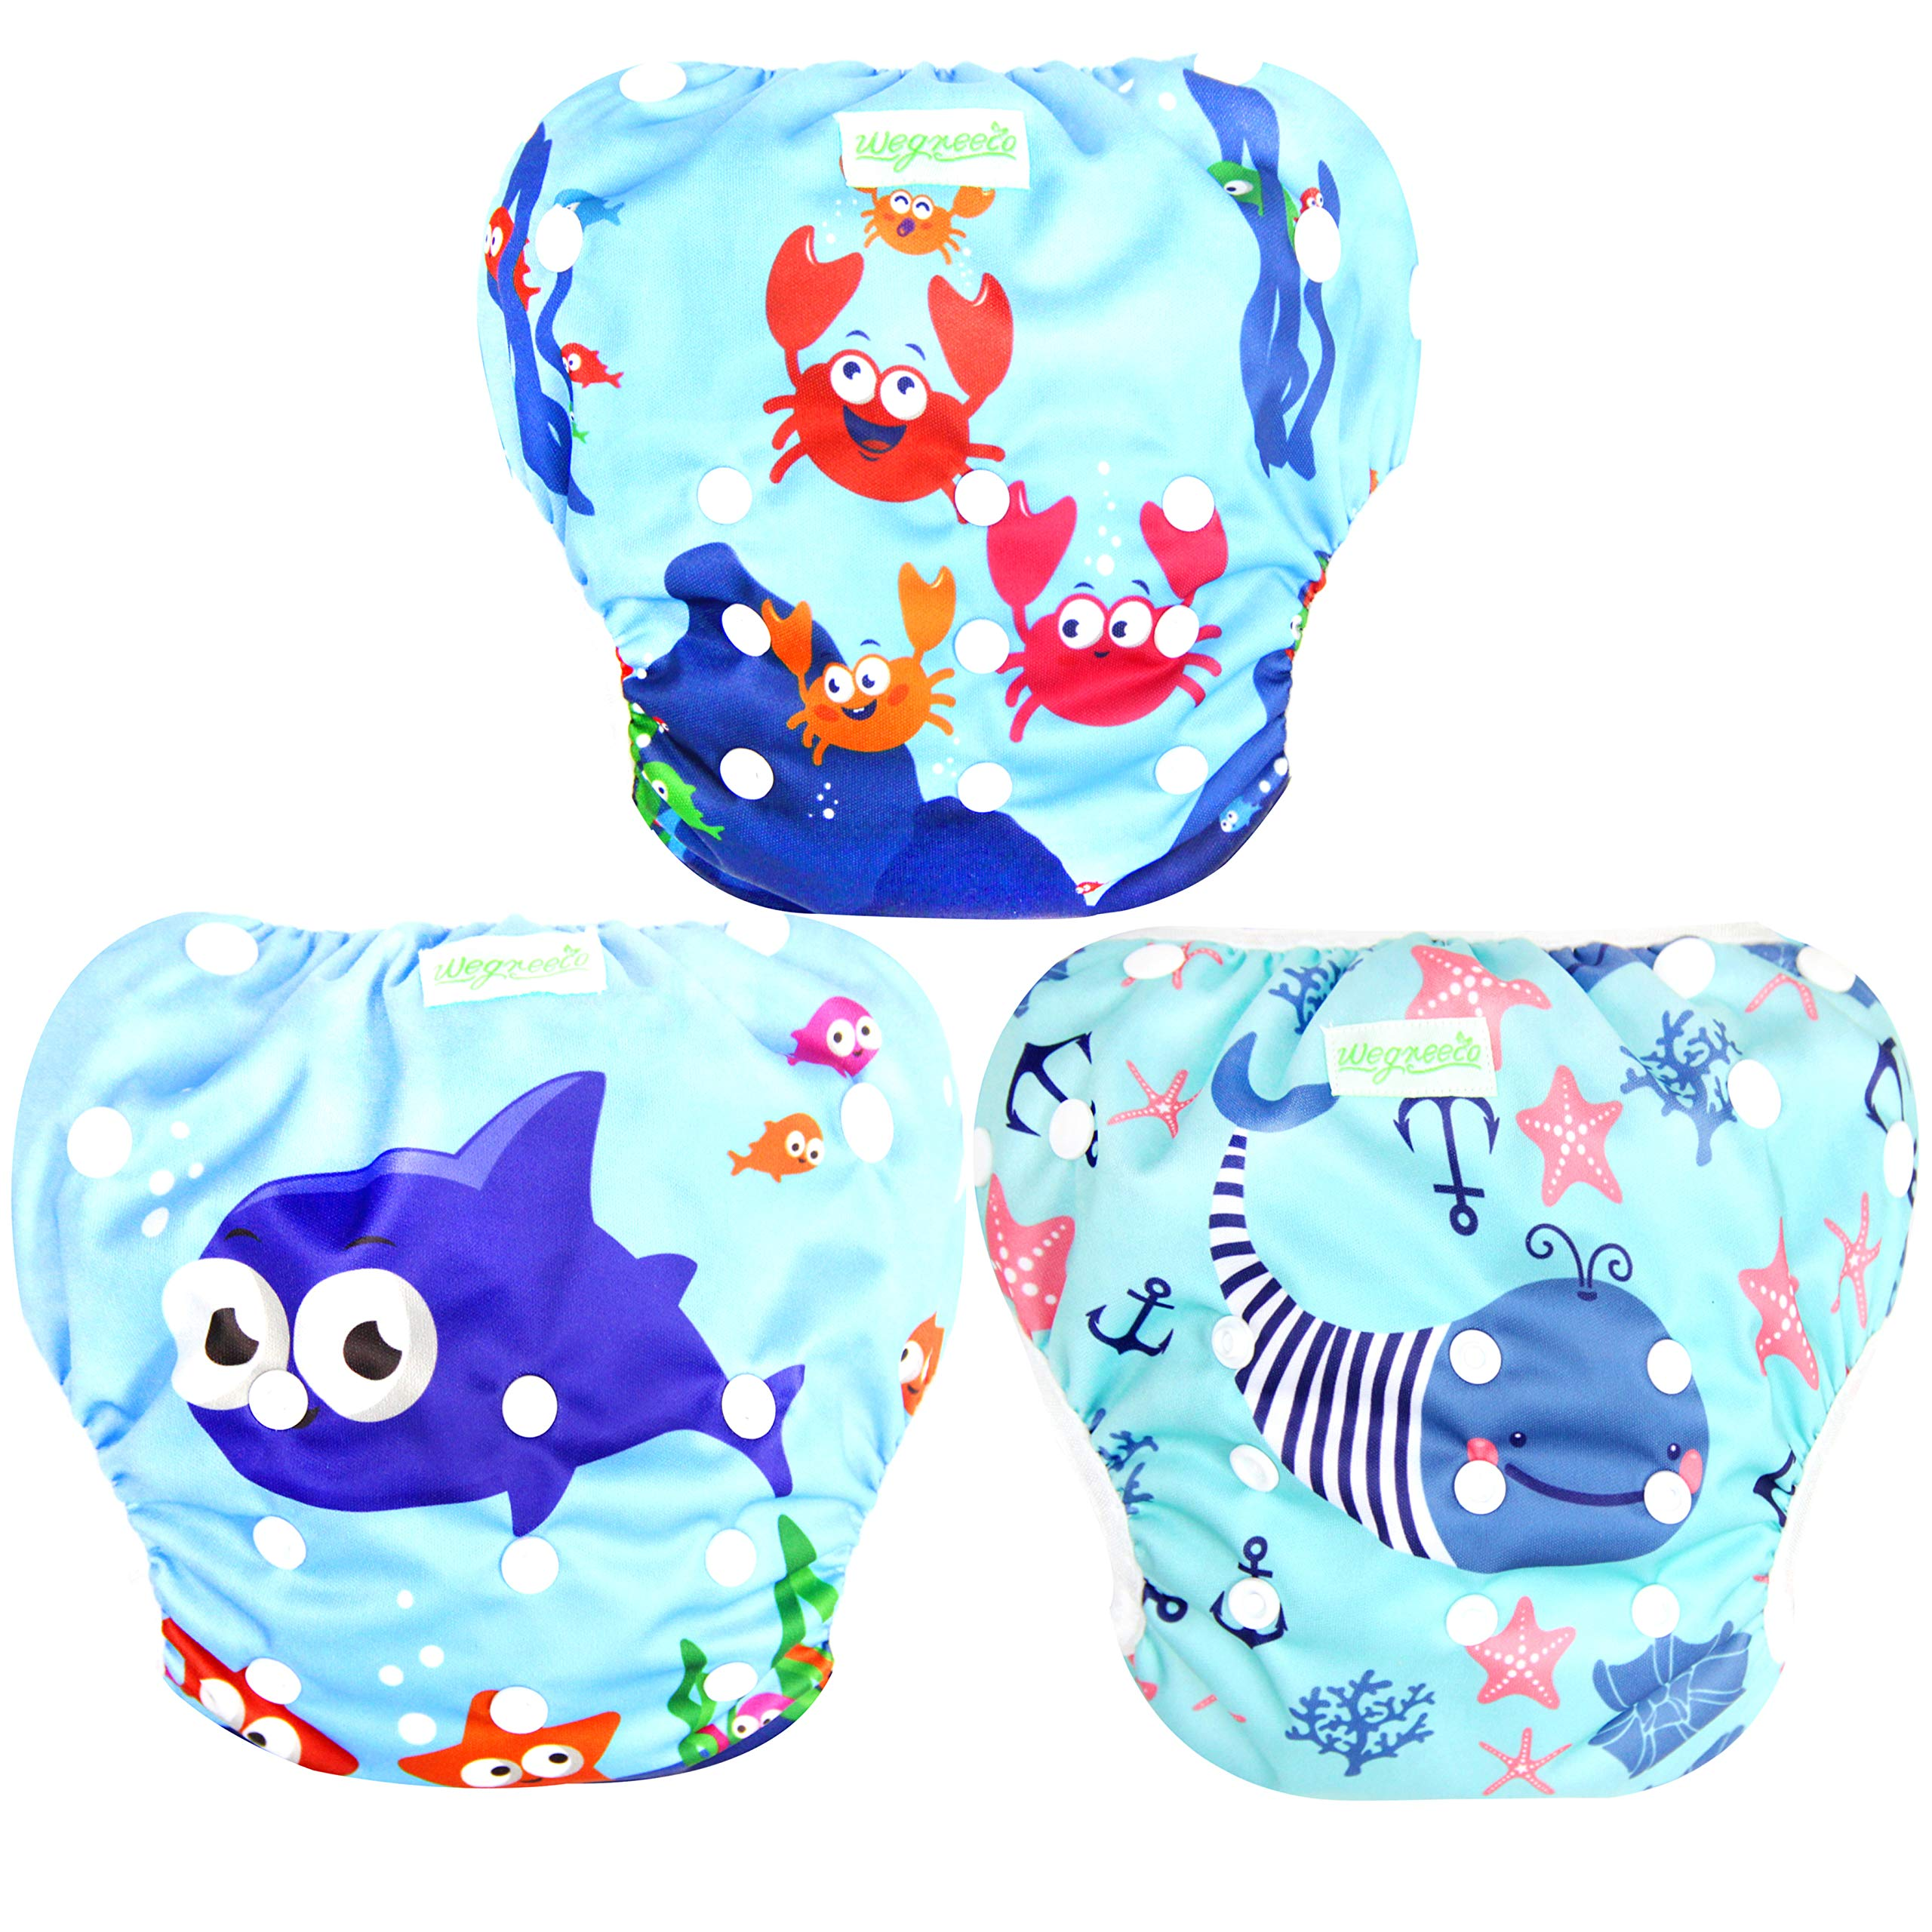 Wegreeco Baby & Toddler Snap One Size Adjustable Reusable Baby Swim Diaper ( Sea-Elves, Large, 3 Pack) by wegreeco